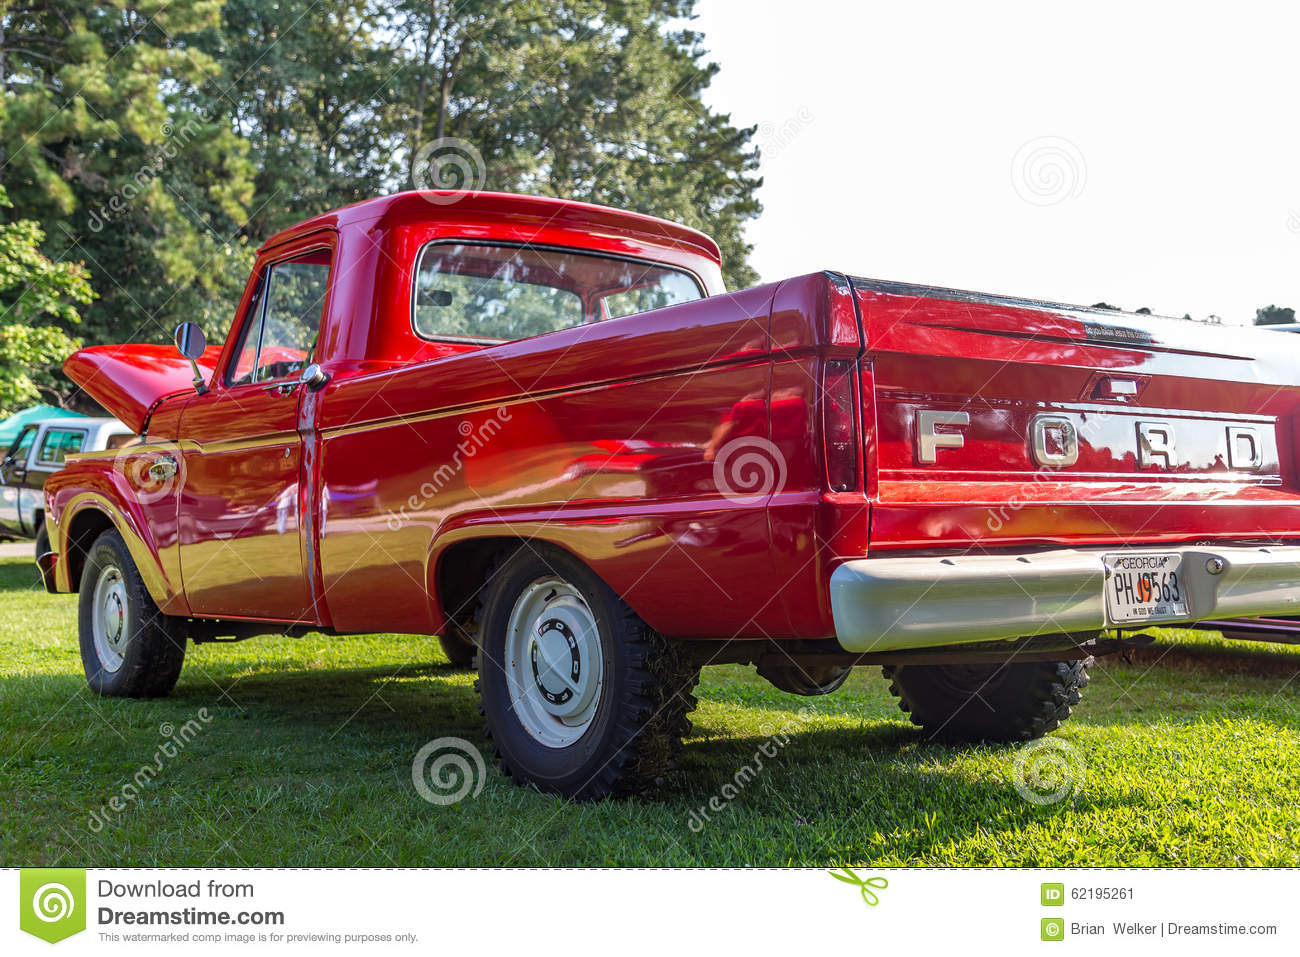 1964 Ford F150 Editorial Photo Image Of Door 1959 Chevy 62195261 Pickup Truck Download